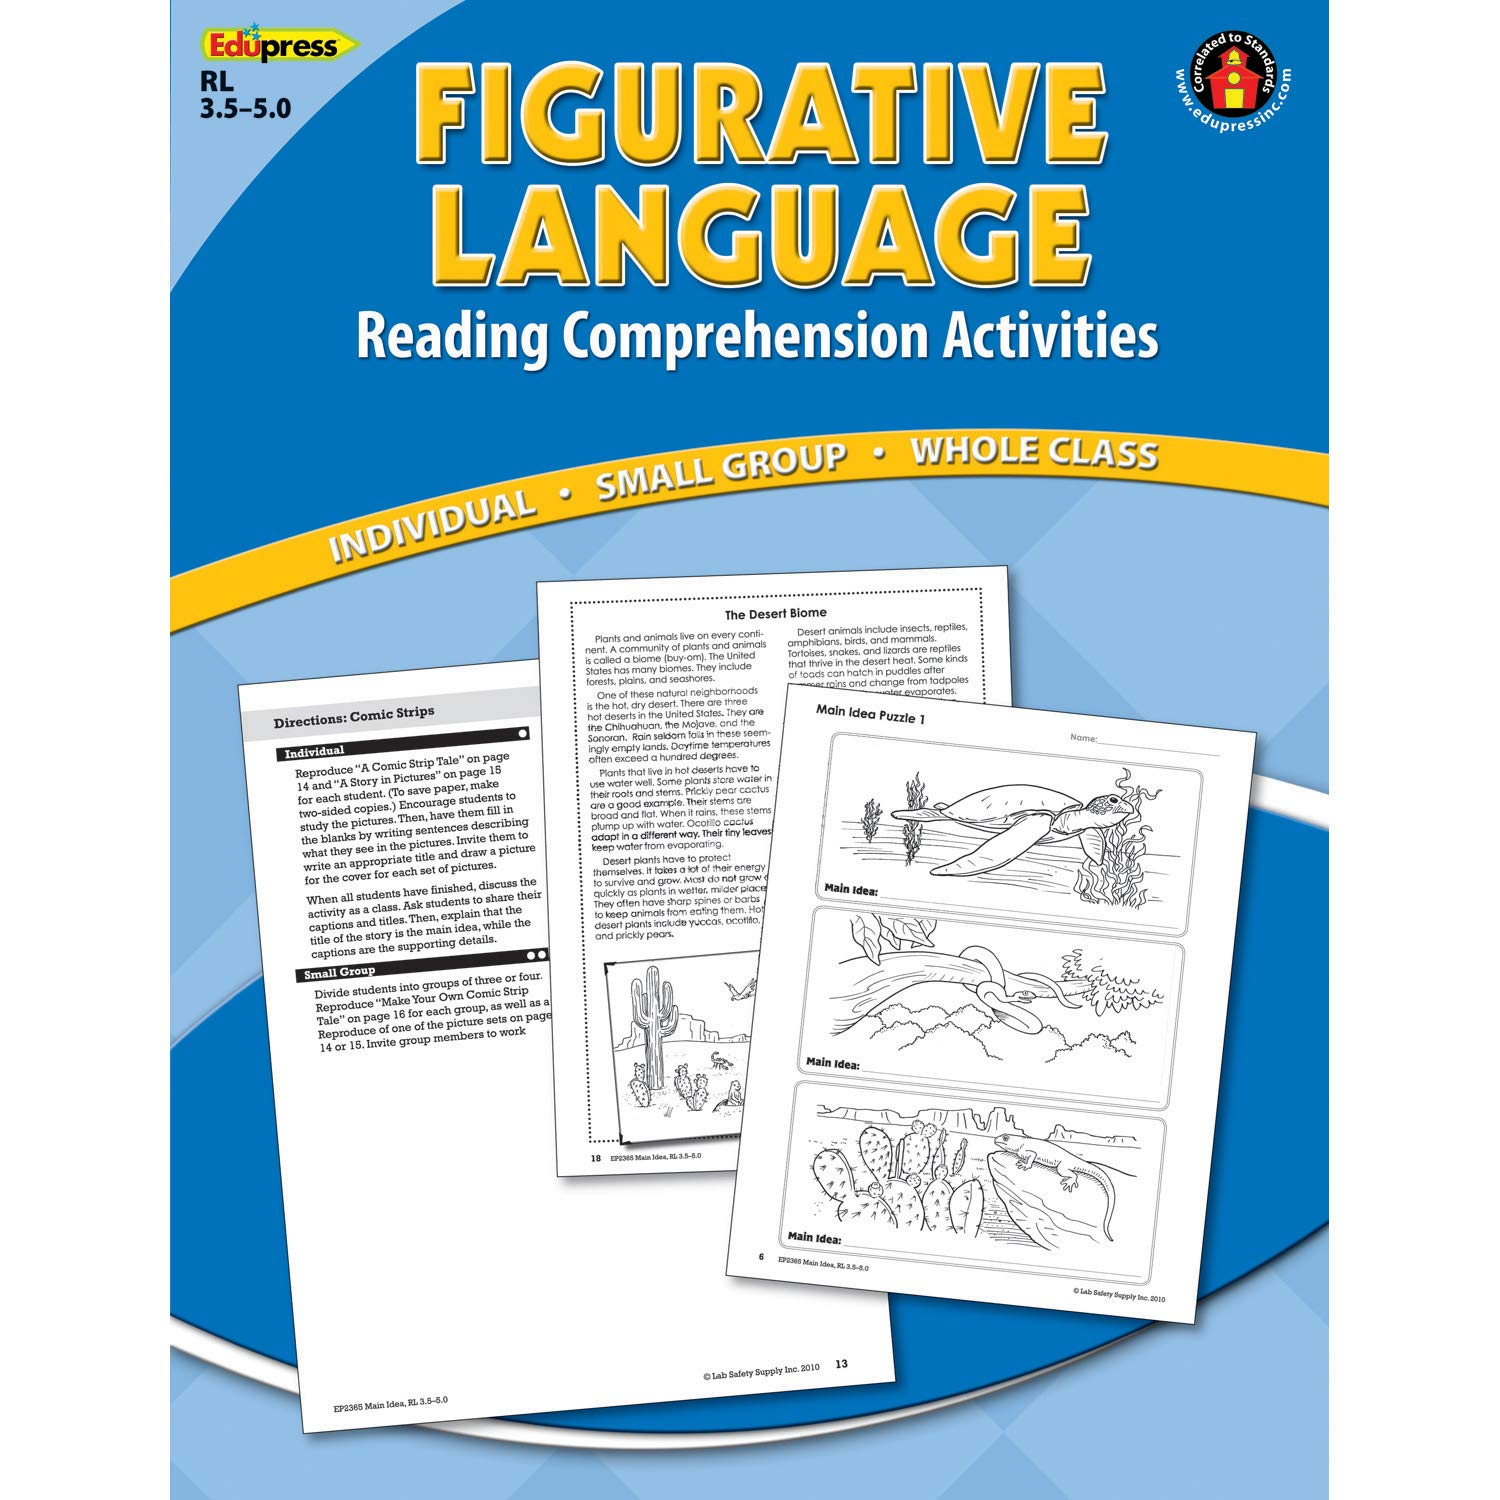 Amazon.com: Edupress EP-2371 Blue Level Figurative Language Reading ...